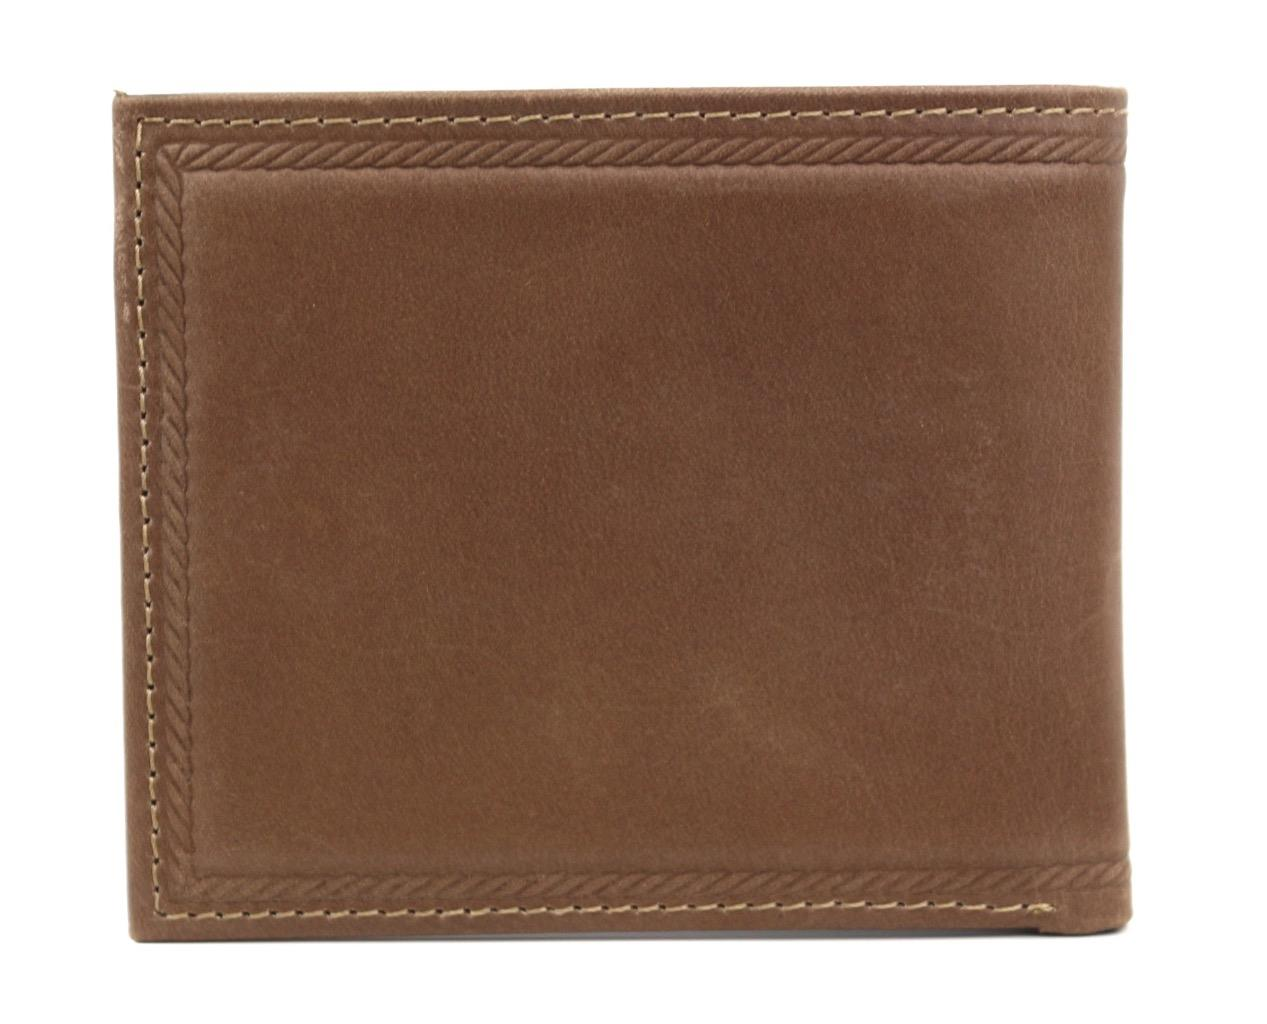 Nautica-Men-039-s-Genuine-Vintage-Leather-Credit-Card-ID-Billfold-Passcase-Wallet thumbnail 19